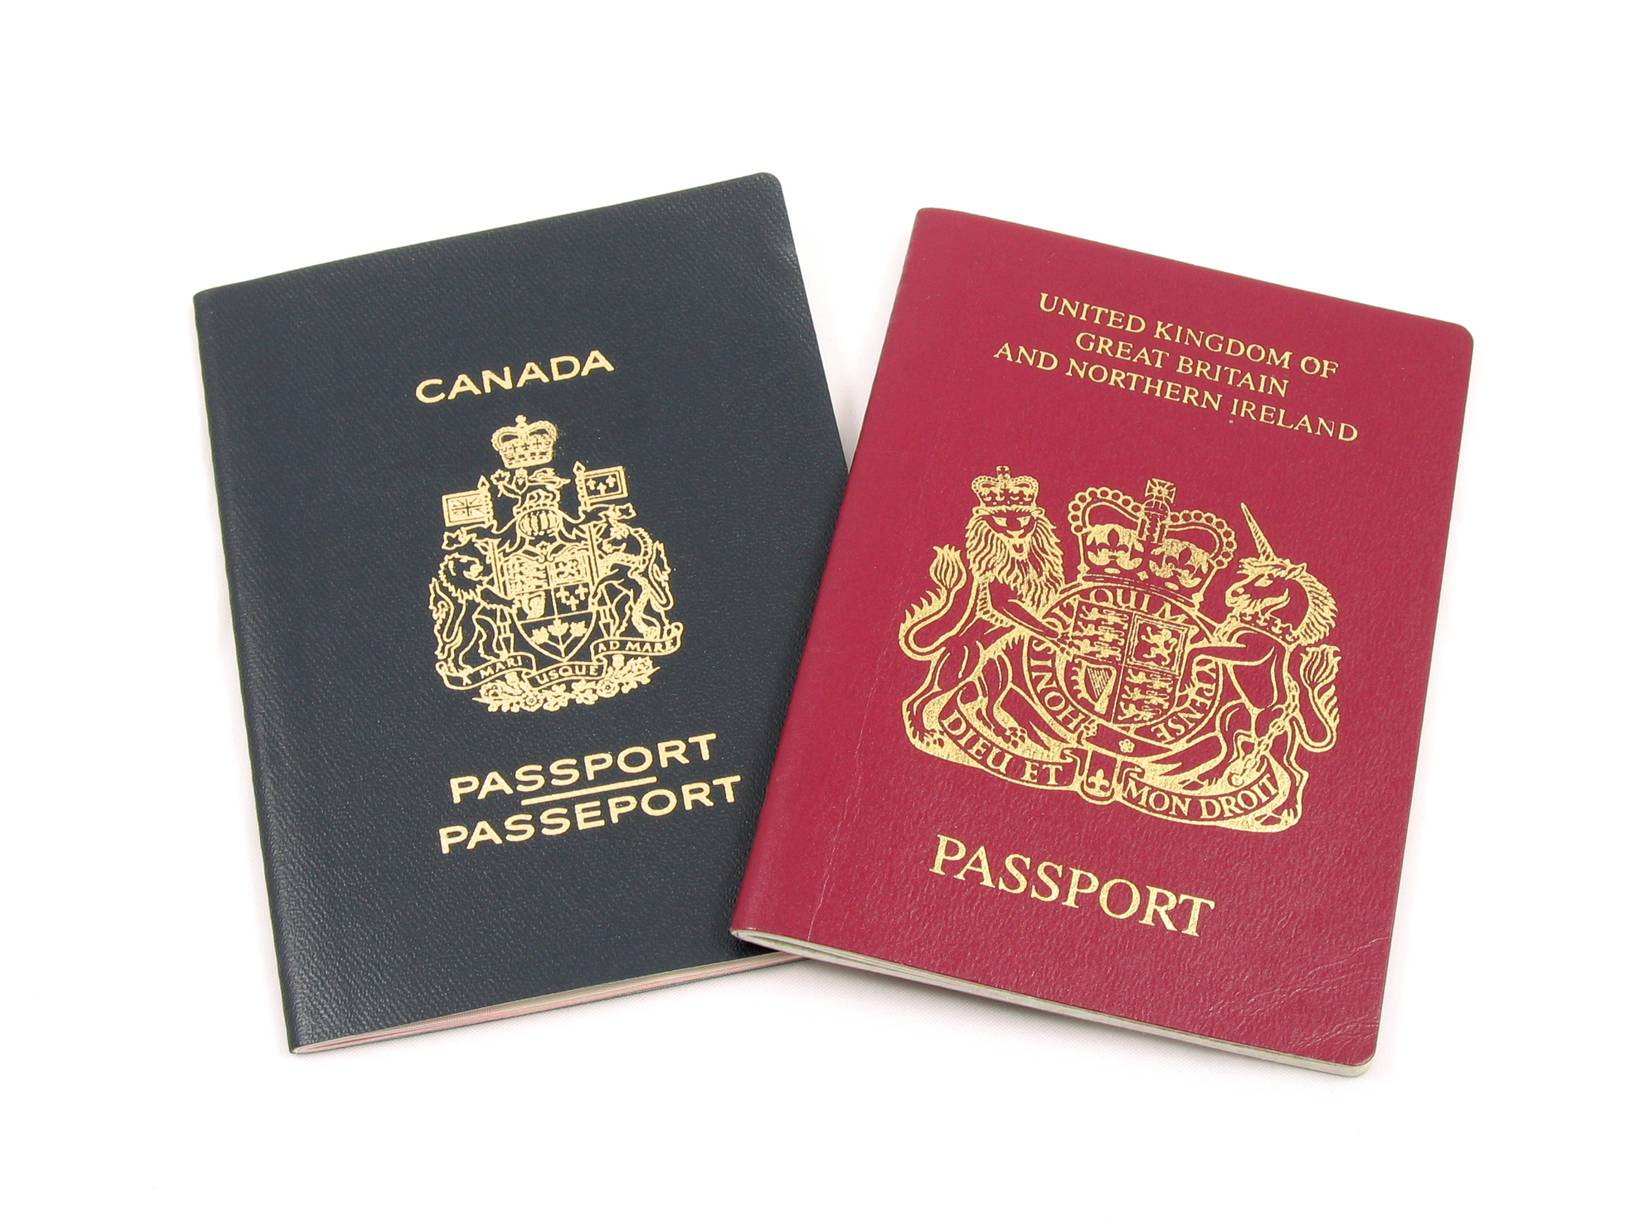 Passport Machine: Passports endproducts